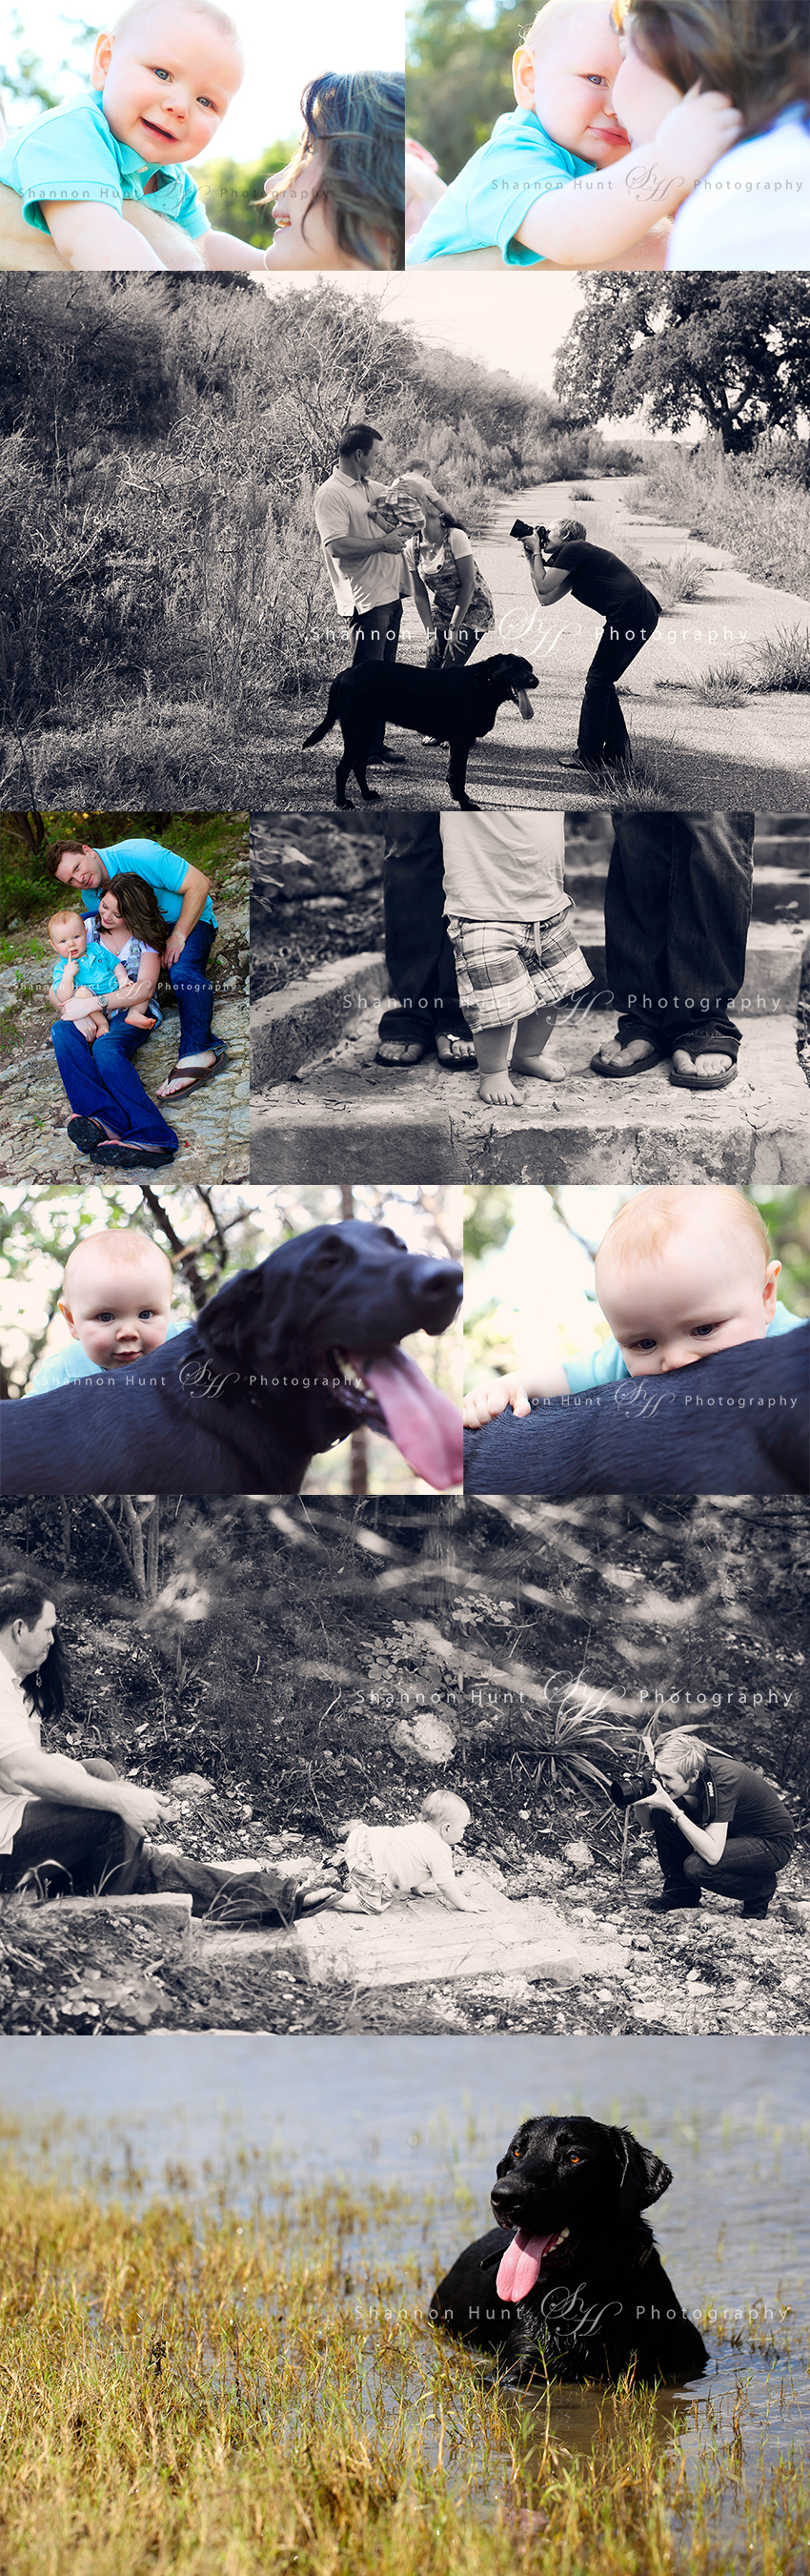 family and baby by Temple TX photography